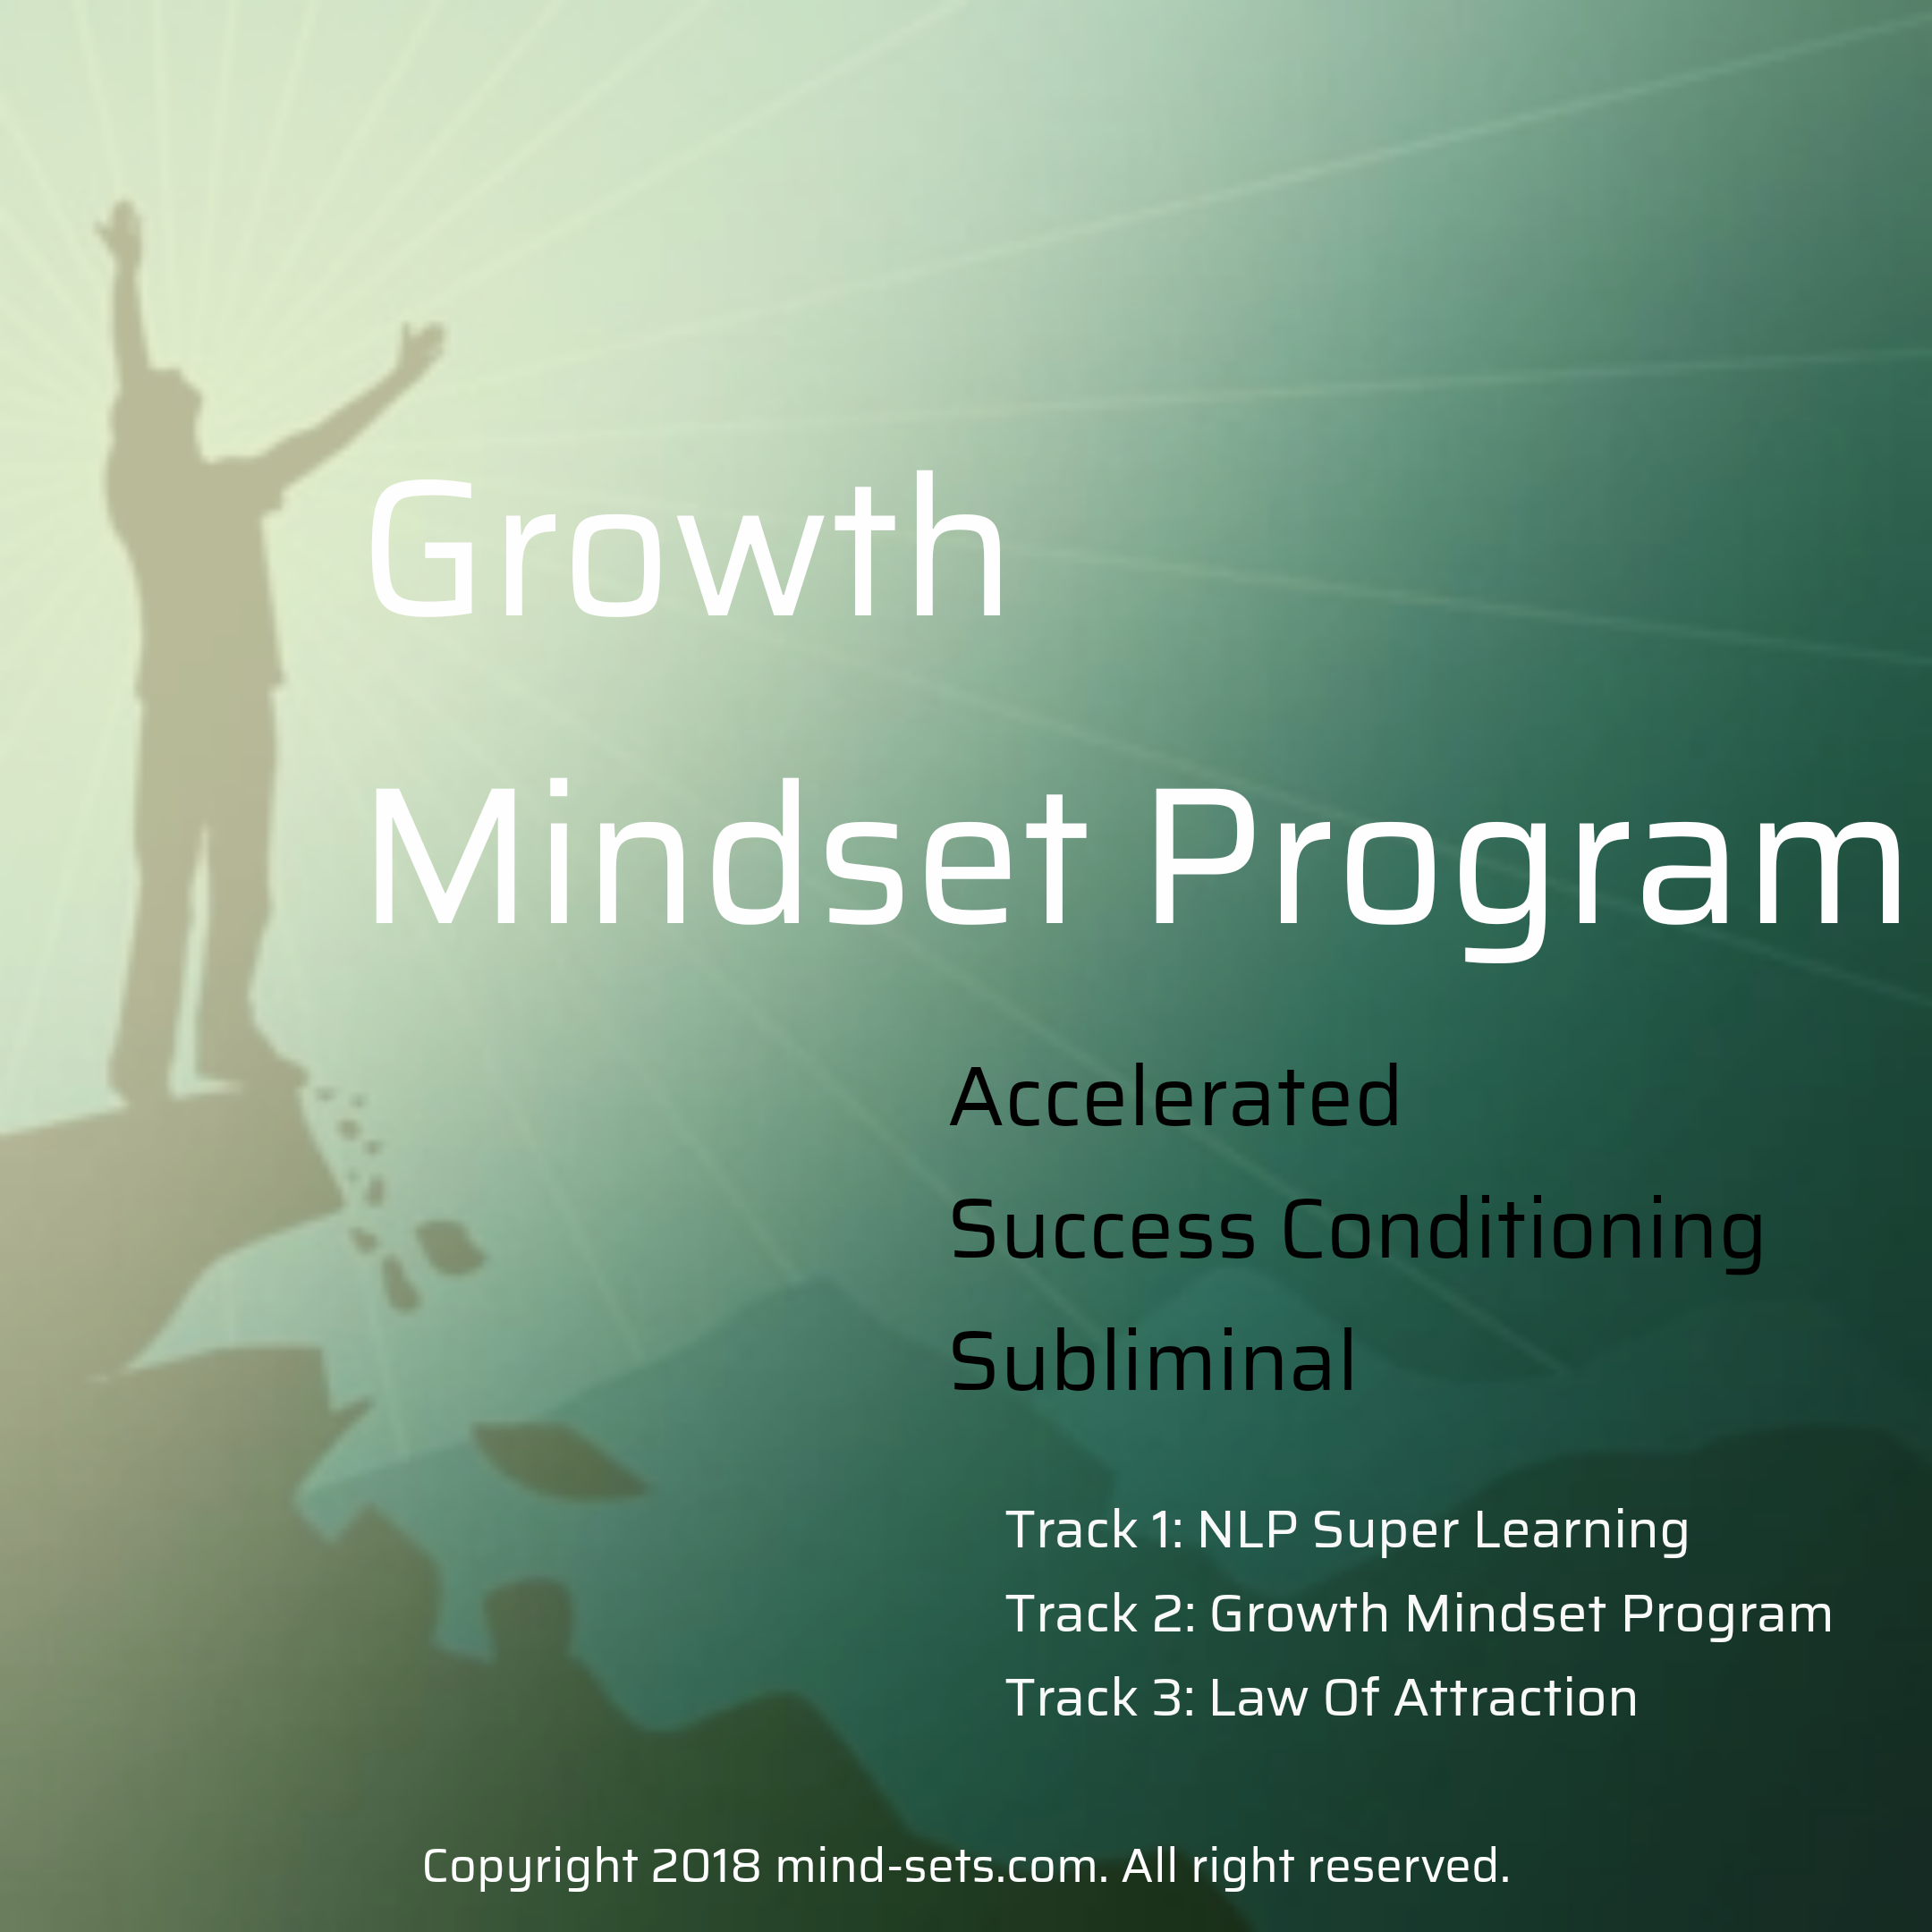 Growth Mindset Program